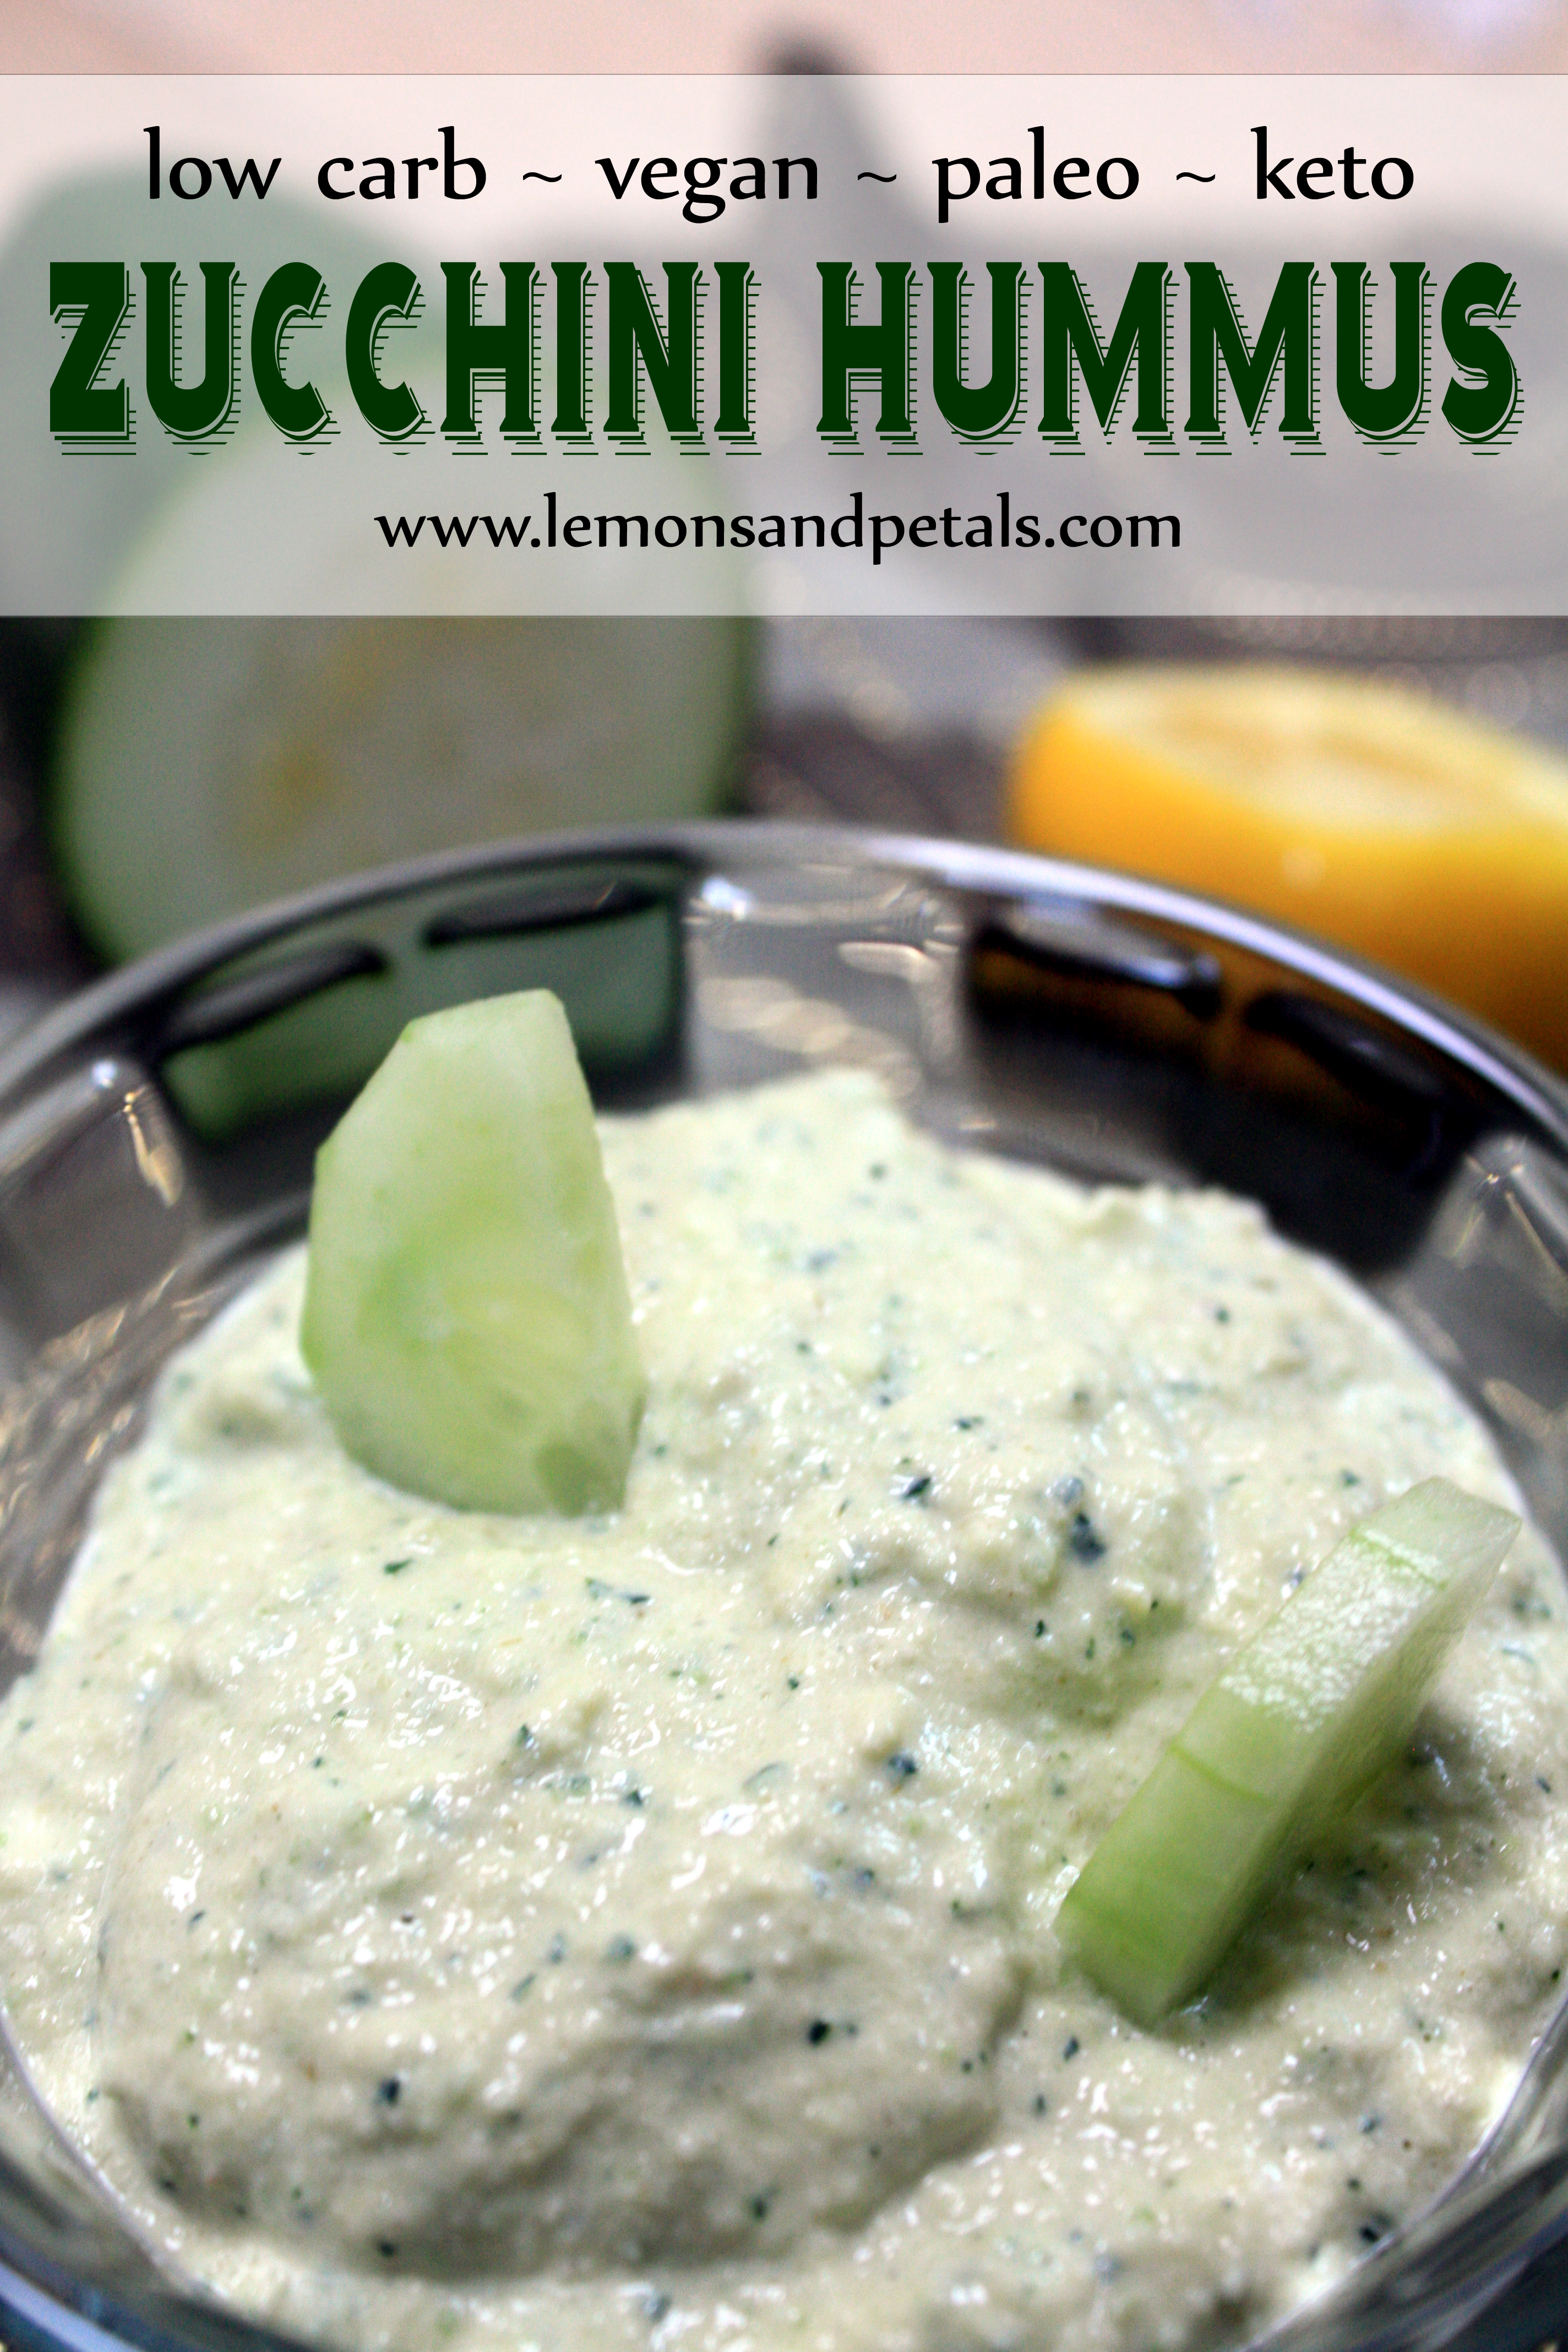 zucchini hummus (vegan, low carb, high protein, keto) | lemons & petals